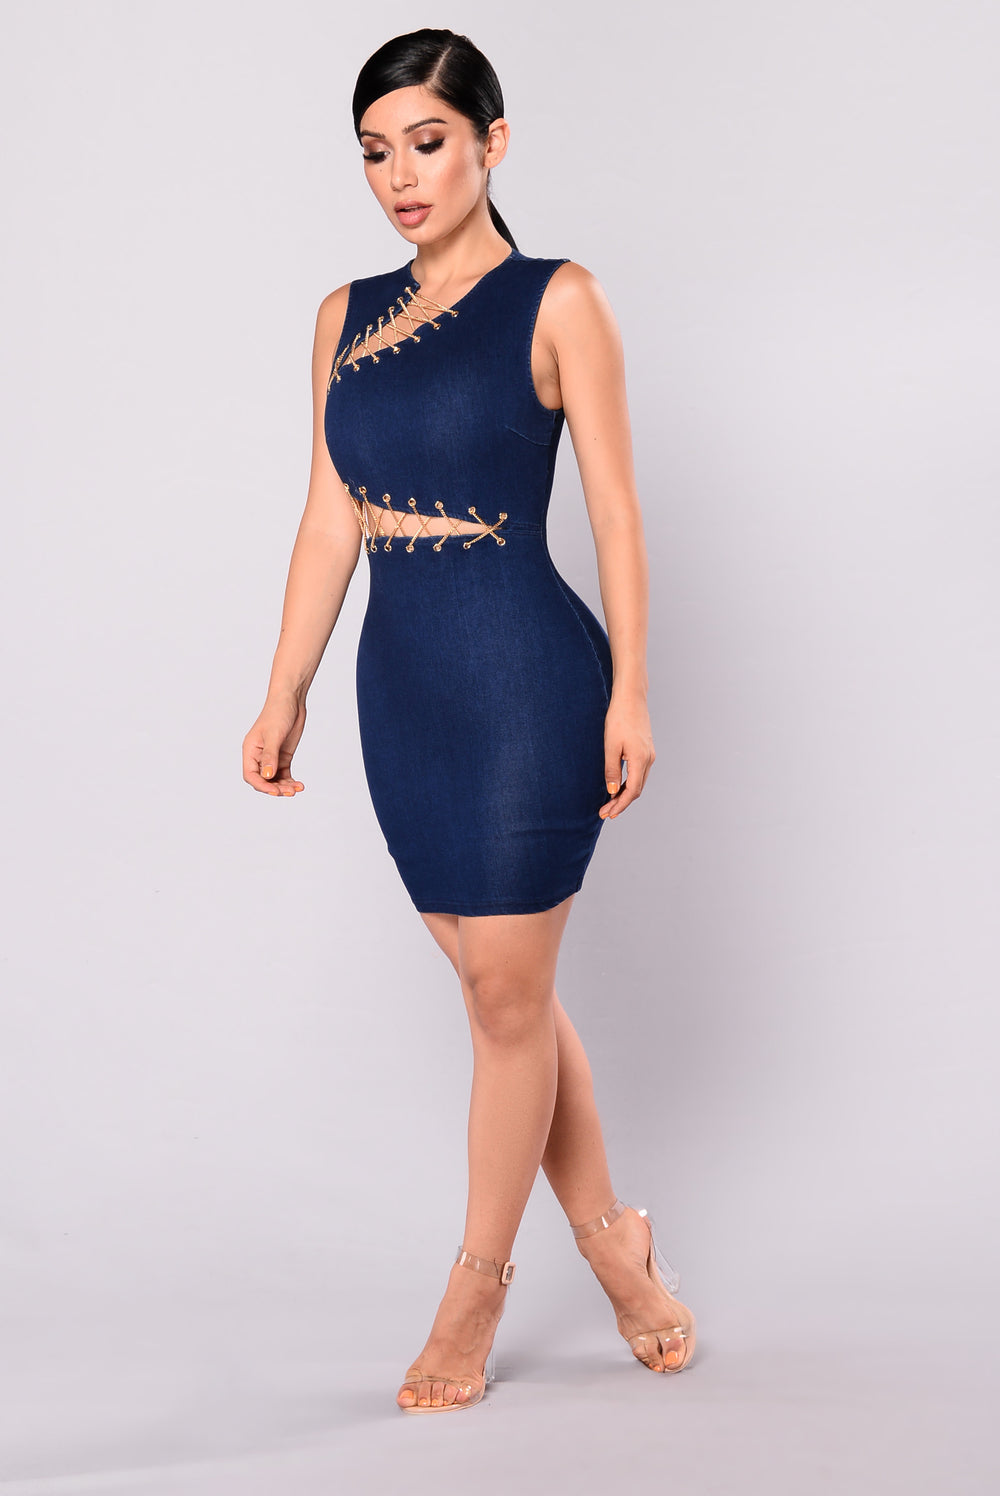 Golden Fantasy Chain Dress - Dark